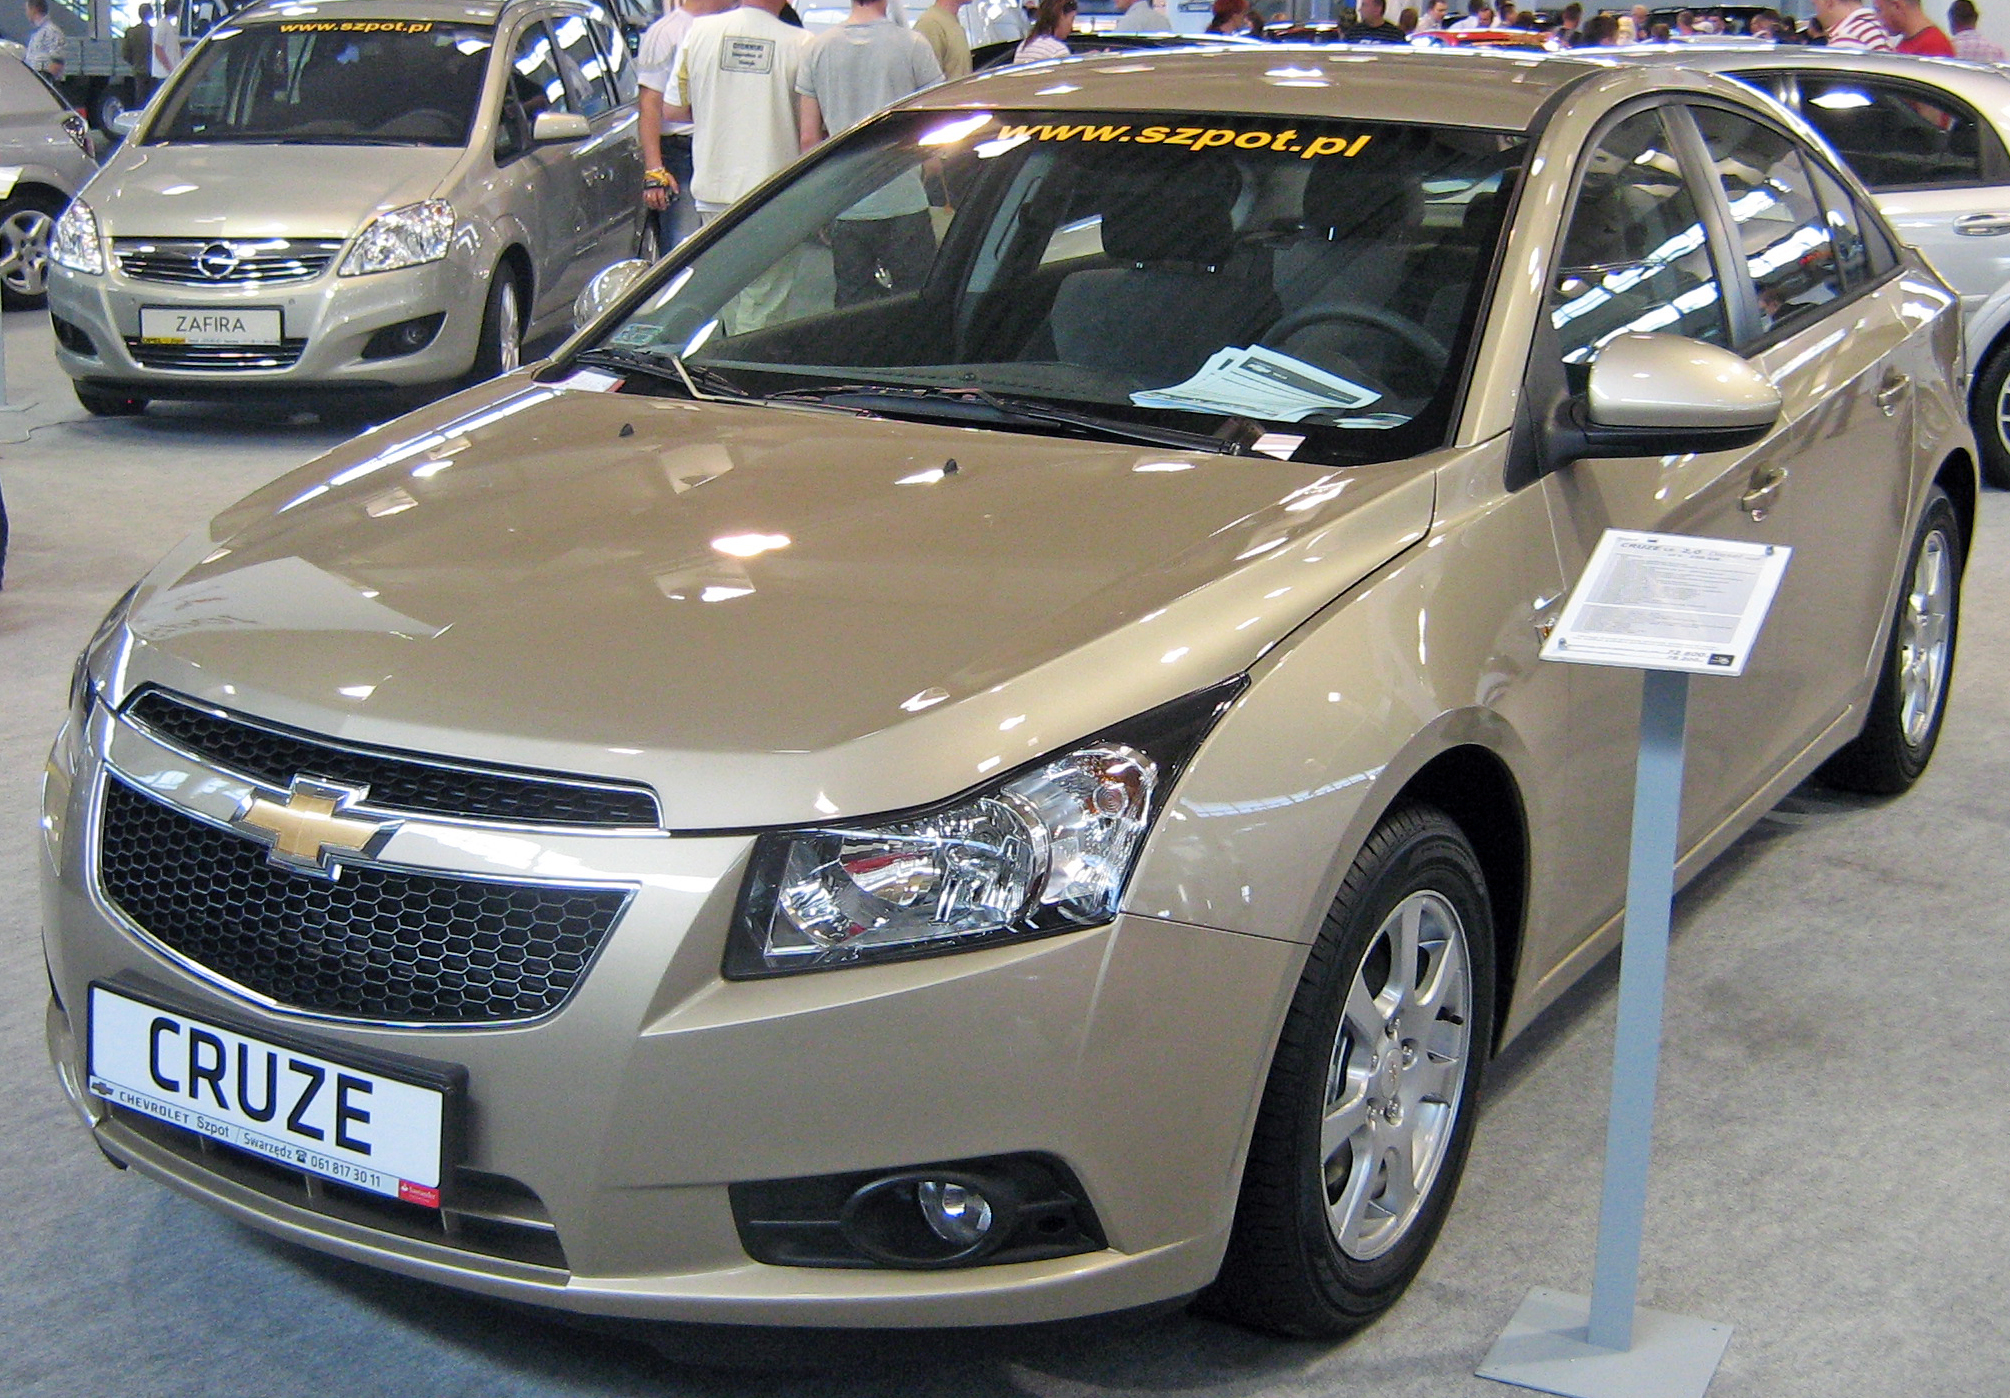 CHEVROLET CRUZE brown